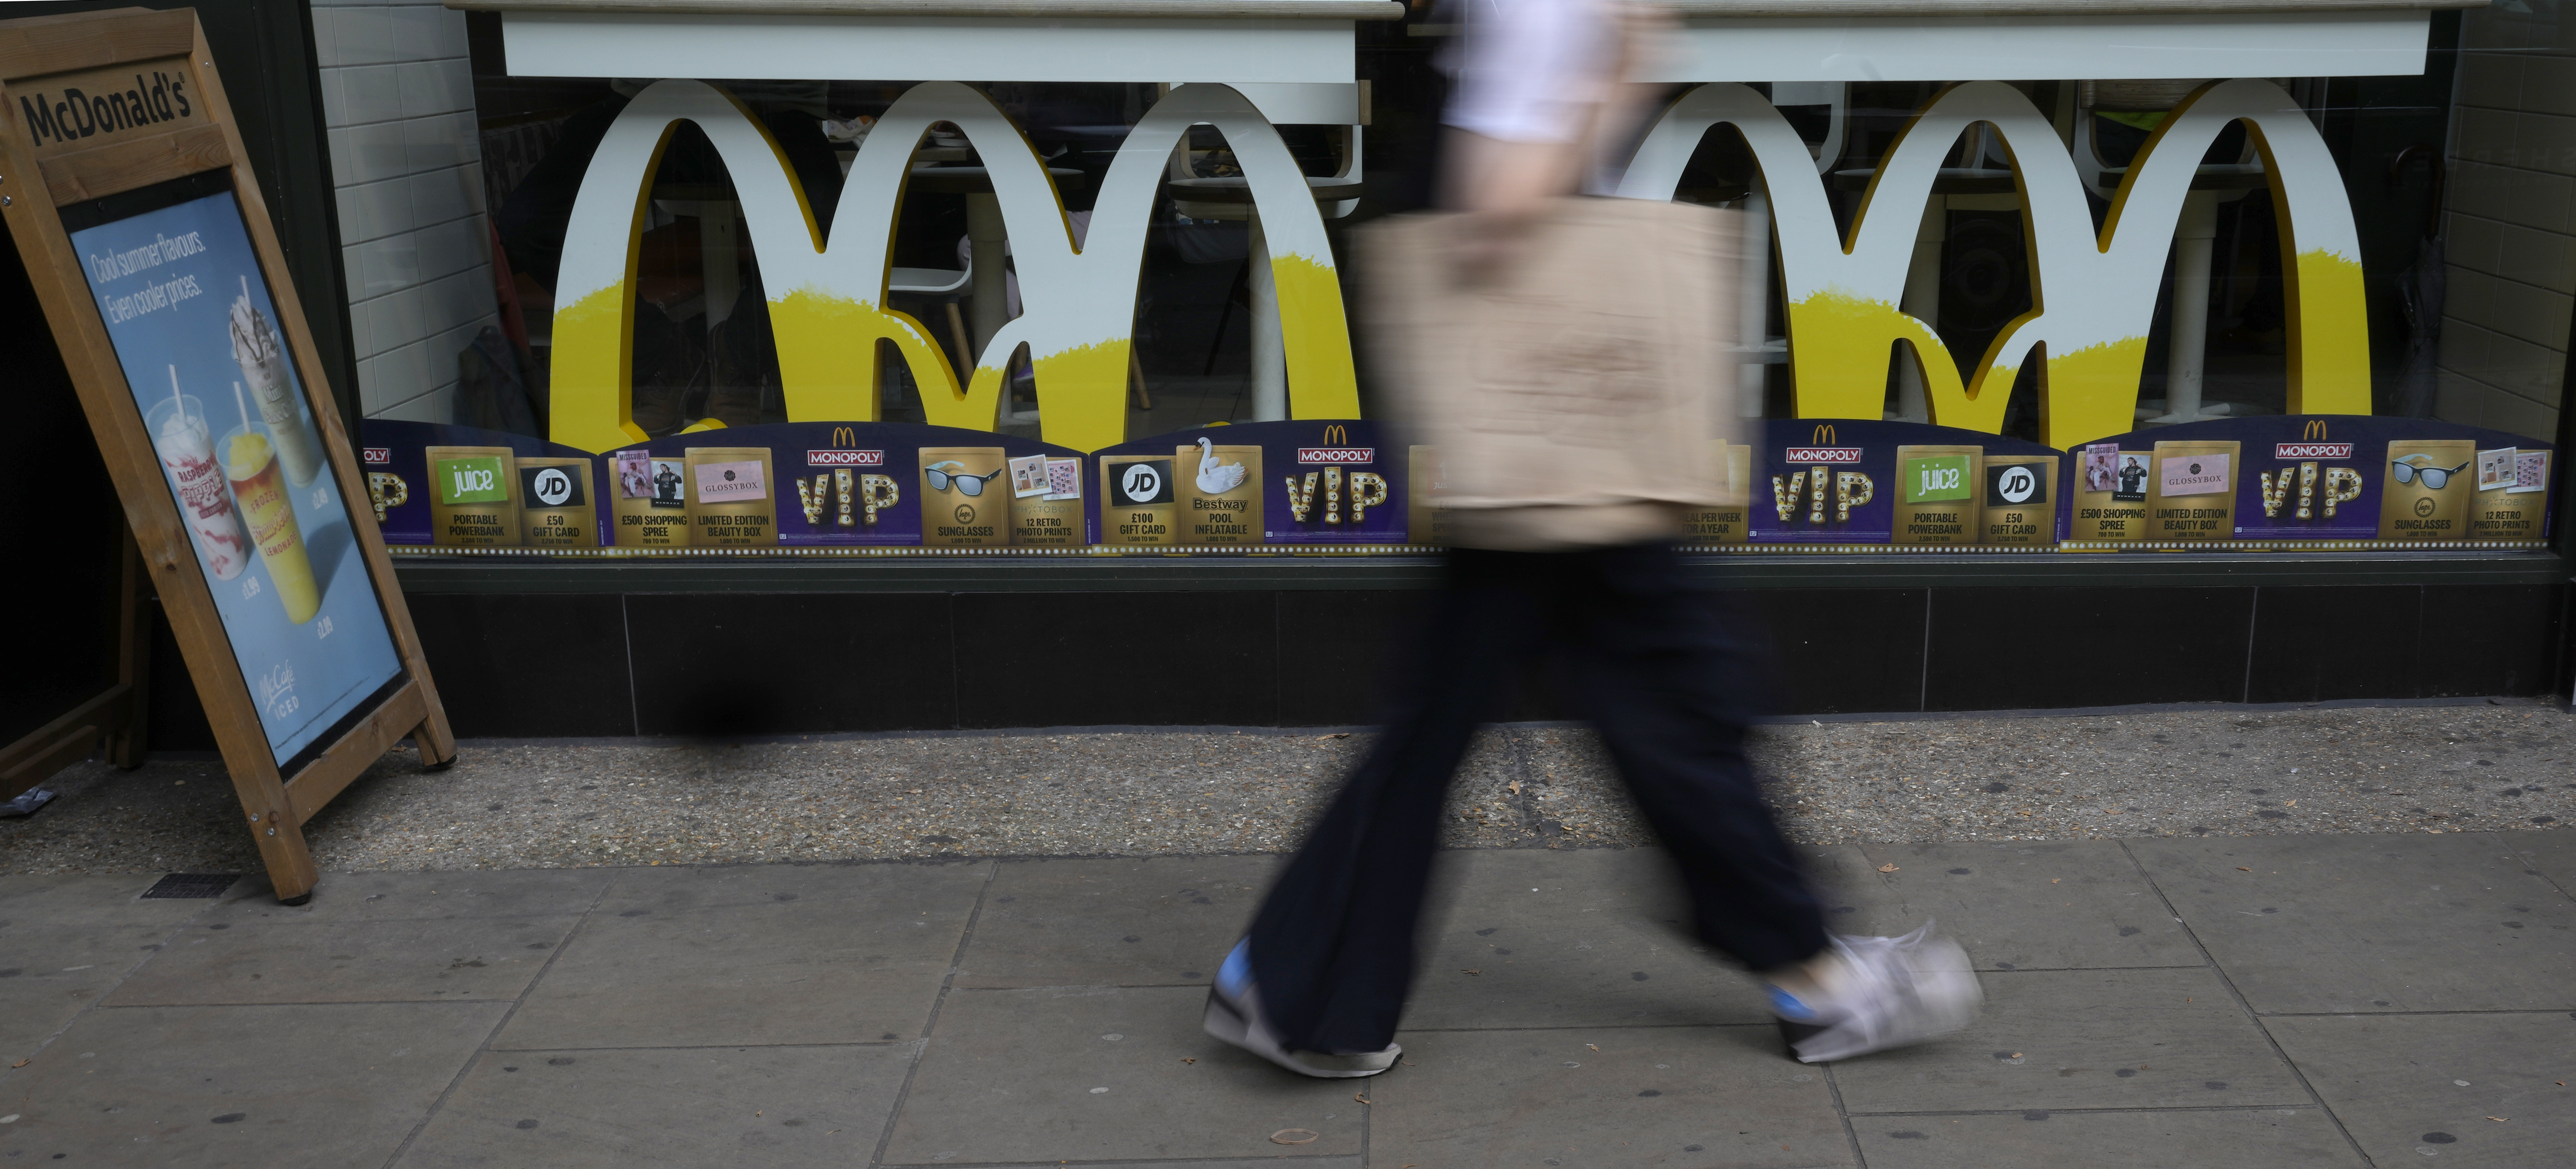 A woman walks by a McDonald's restaurant, in London, Tuesday, Aug. 24, 2021. McDonalds says it has pulled milkshakes from the menu in all 1,250 of its British restaurants because of supply problems stemming from a shortage of truck drivers. The fast-food chain says it is also experiencing shortages of bottled drinks. (AP Photo/Alastair Grant)